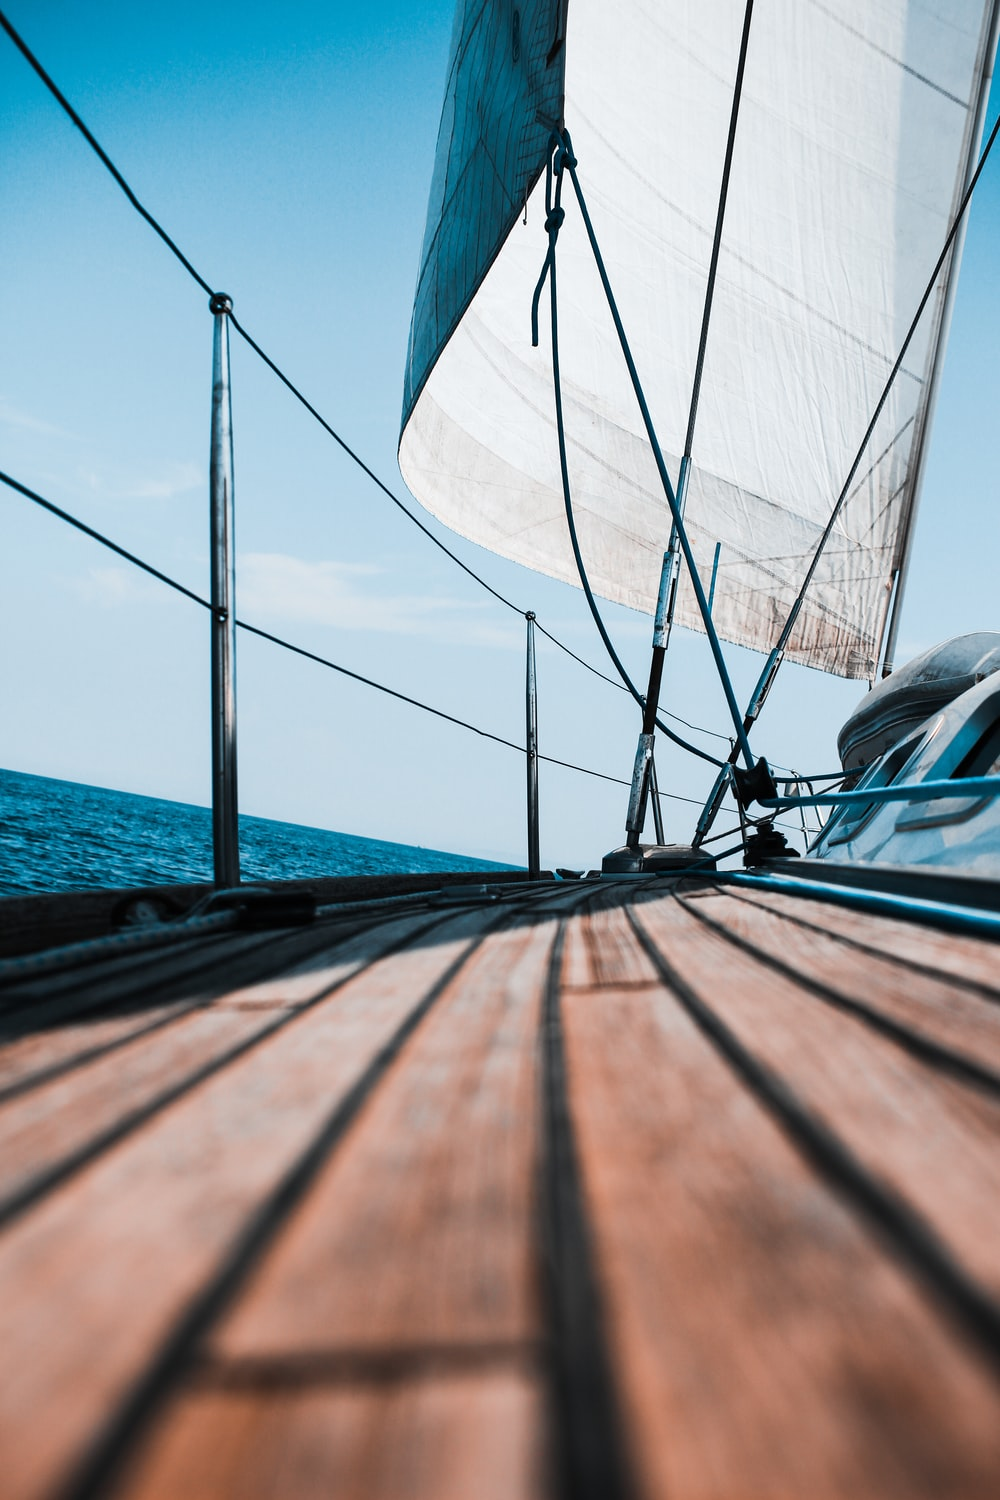 selective focus photography of blue and gray mast during daytime